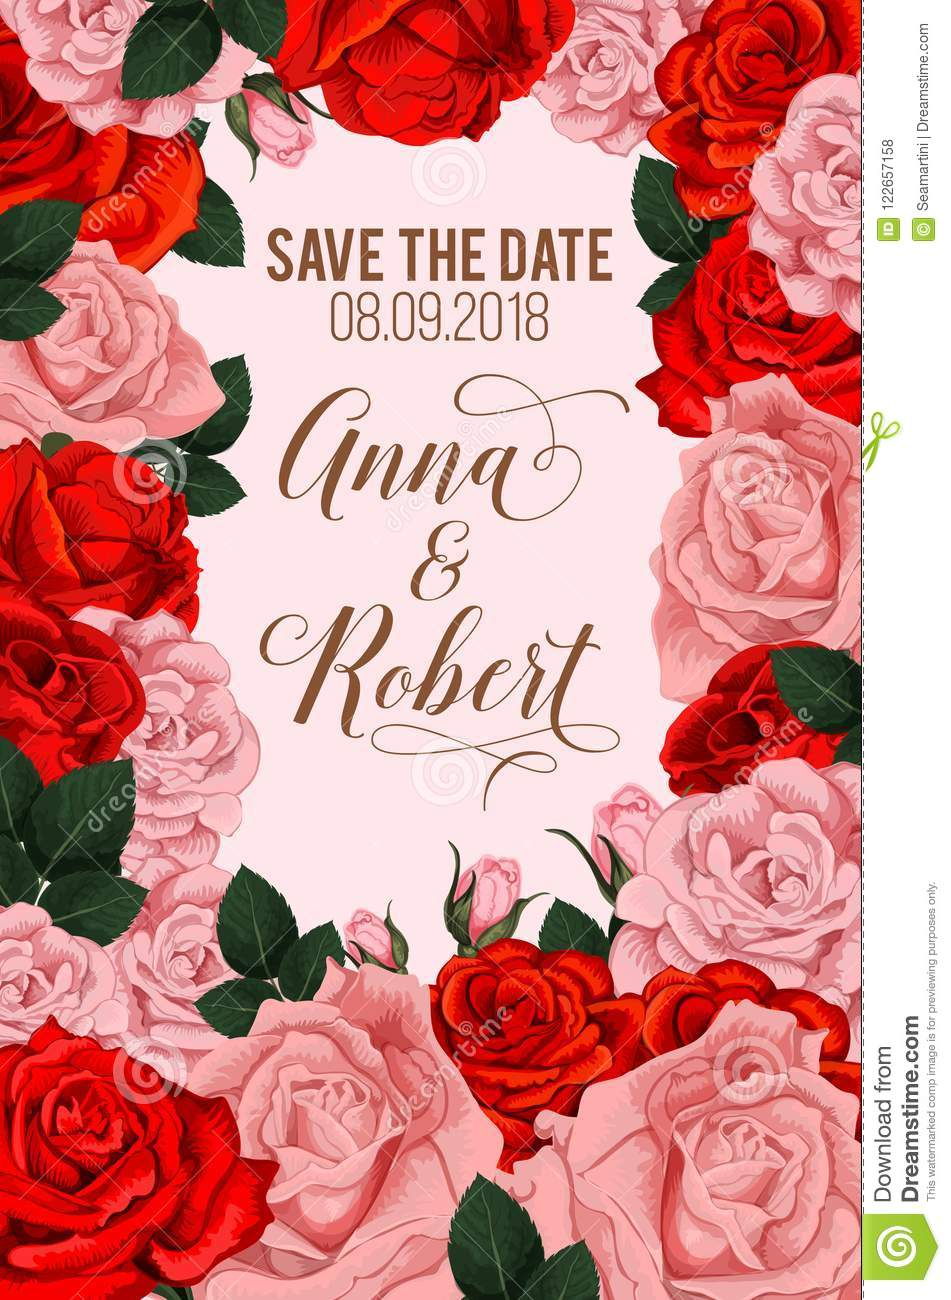 Rose Flowers For Save The Date Vector Card Stock Vector ...